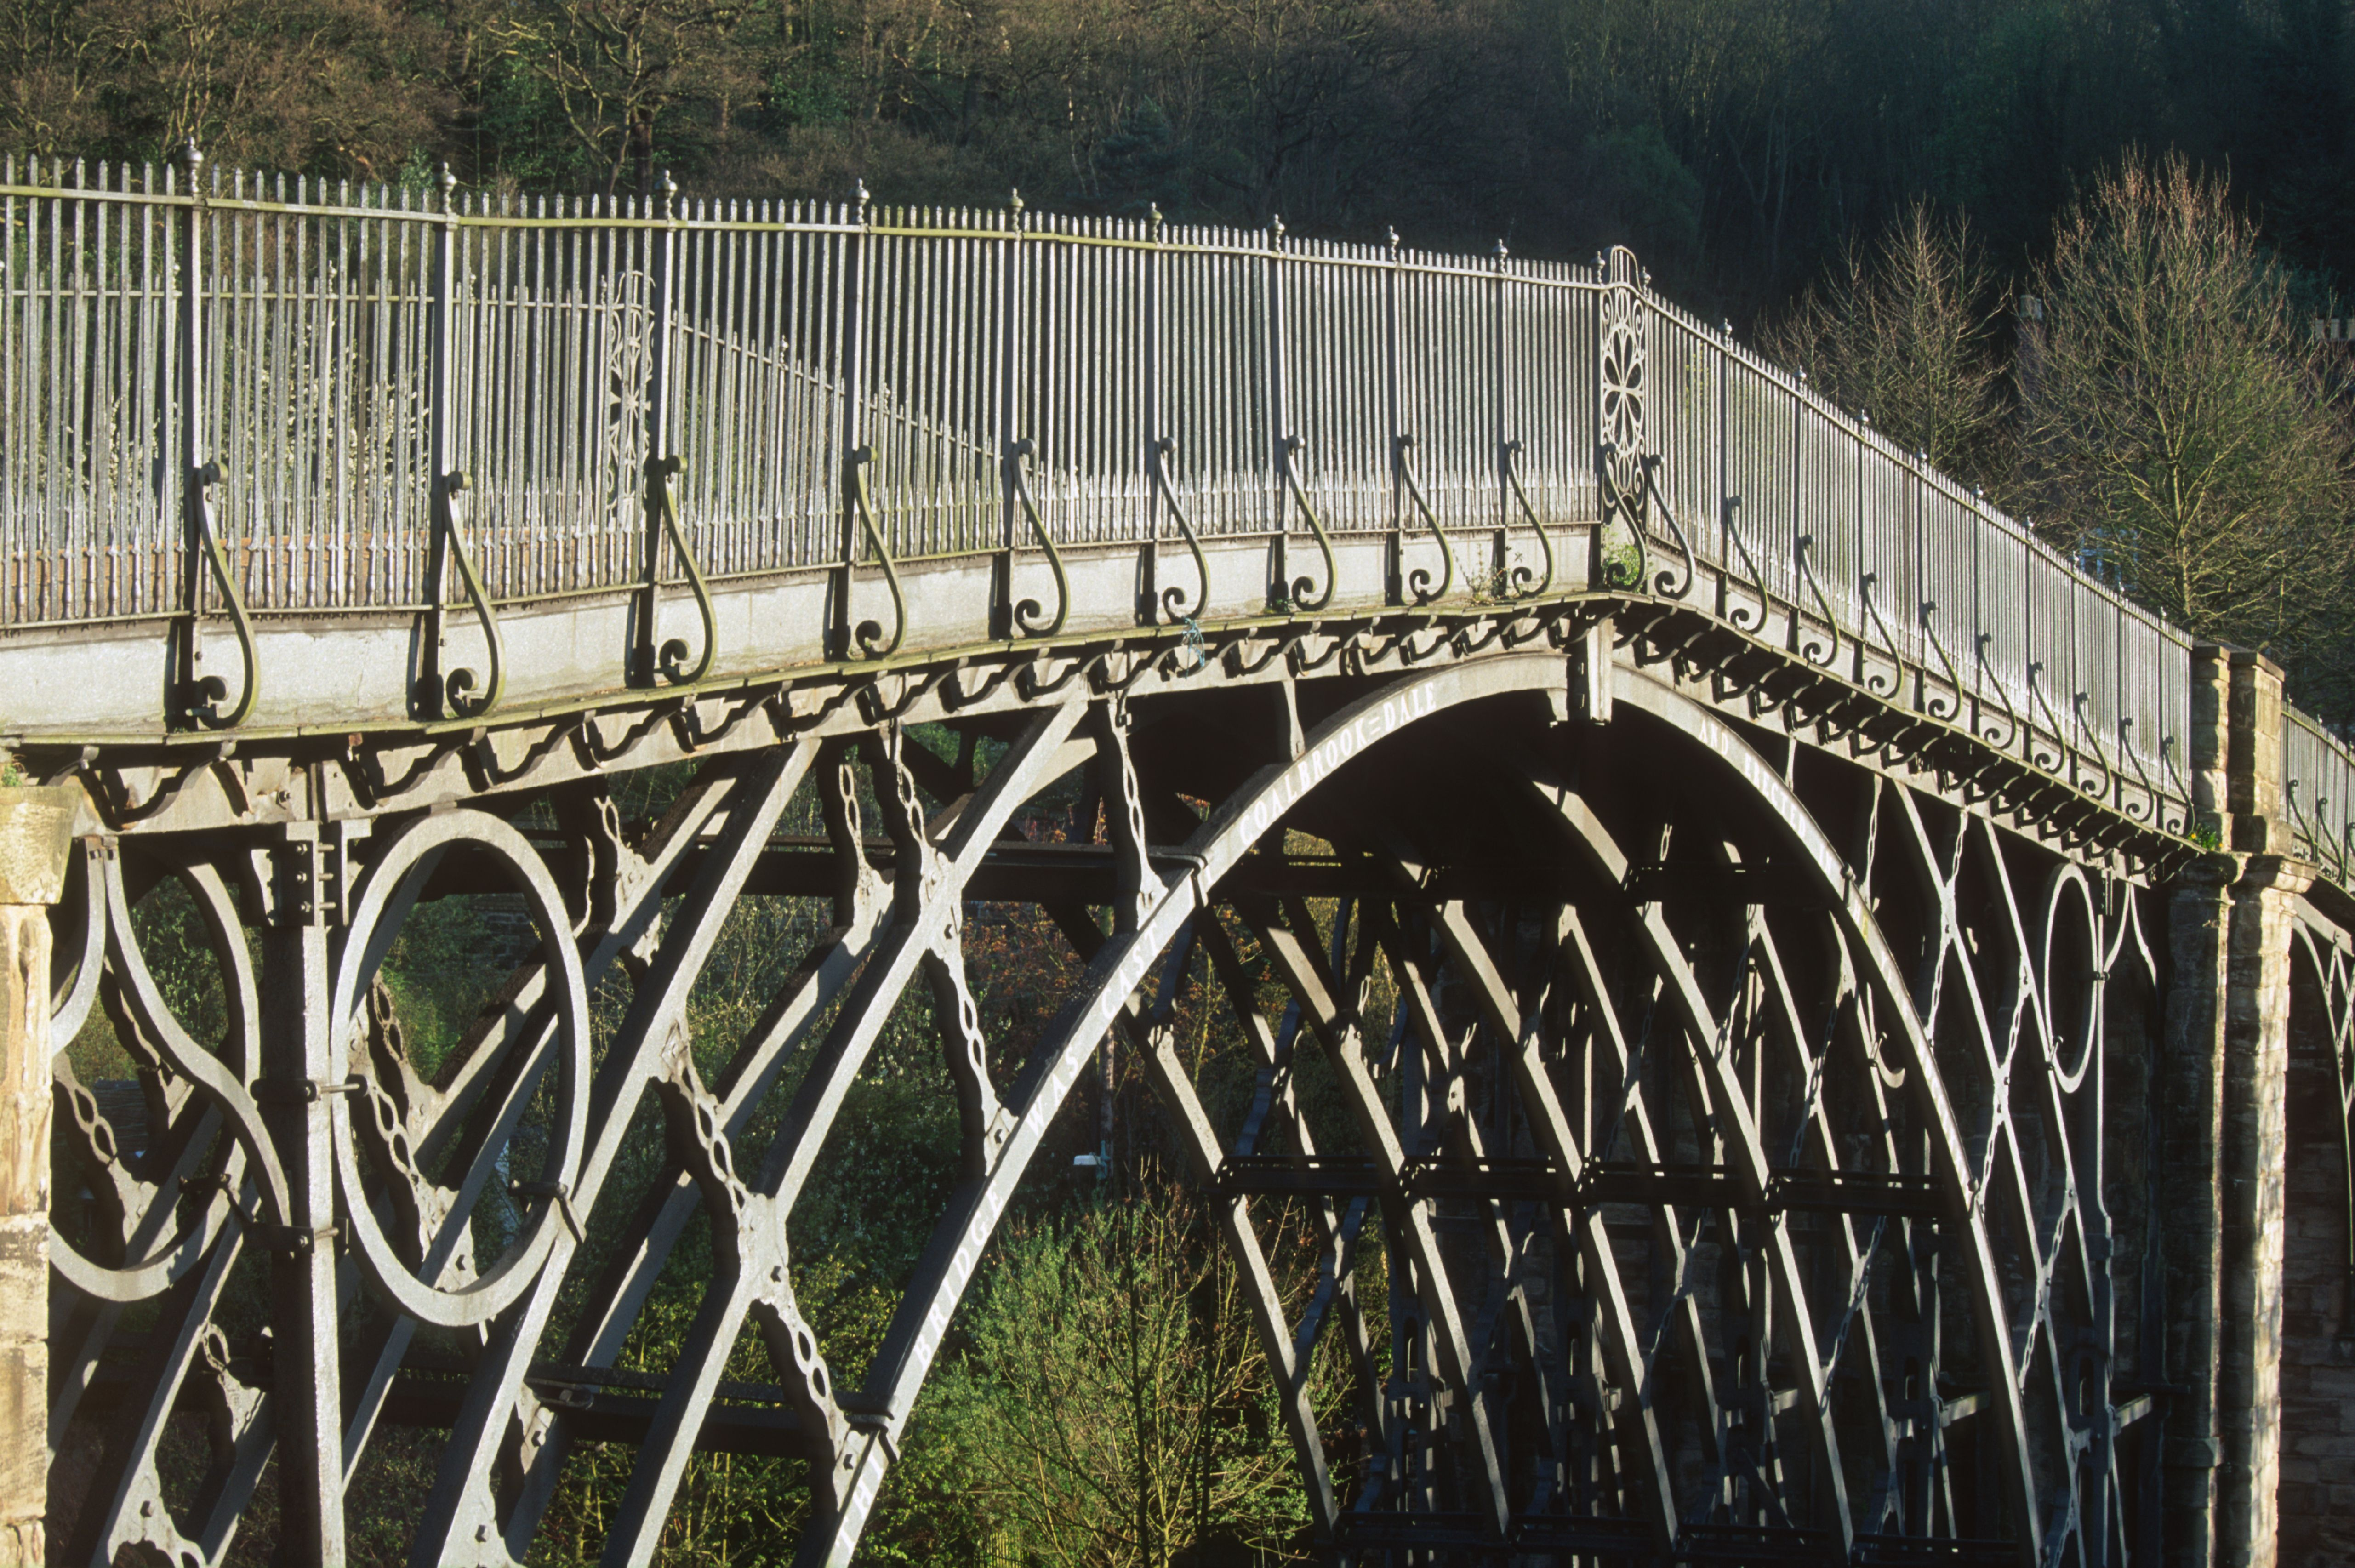 Iron arch bridge with railings on either side